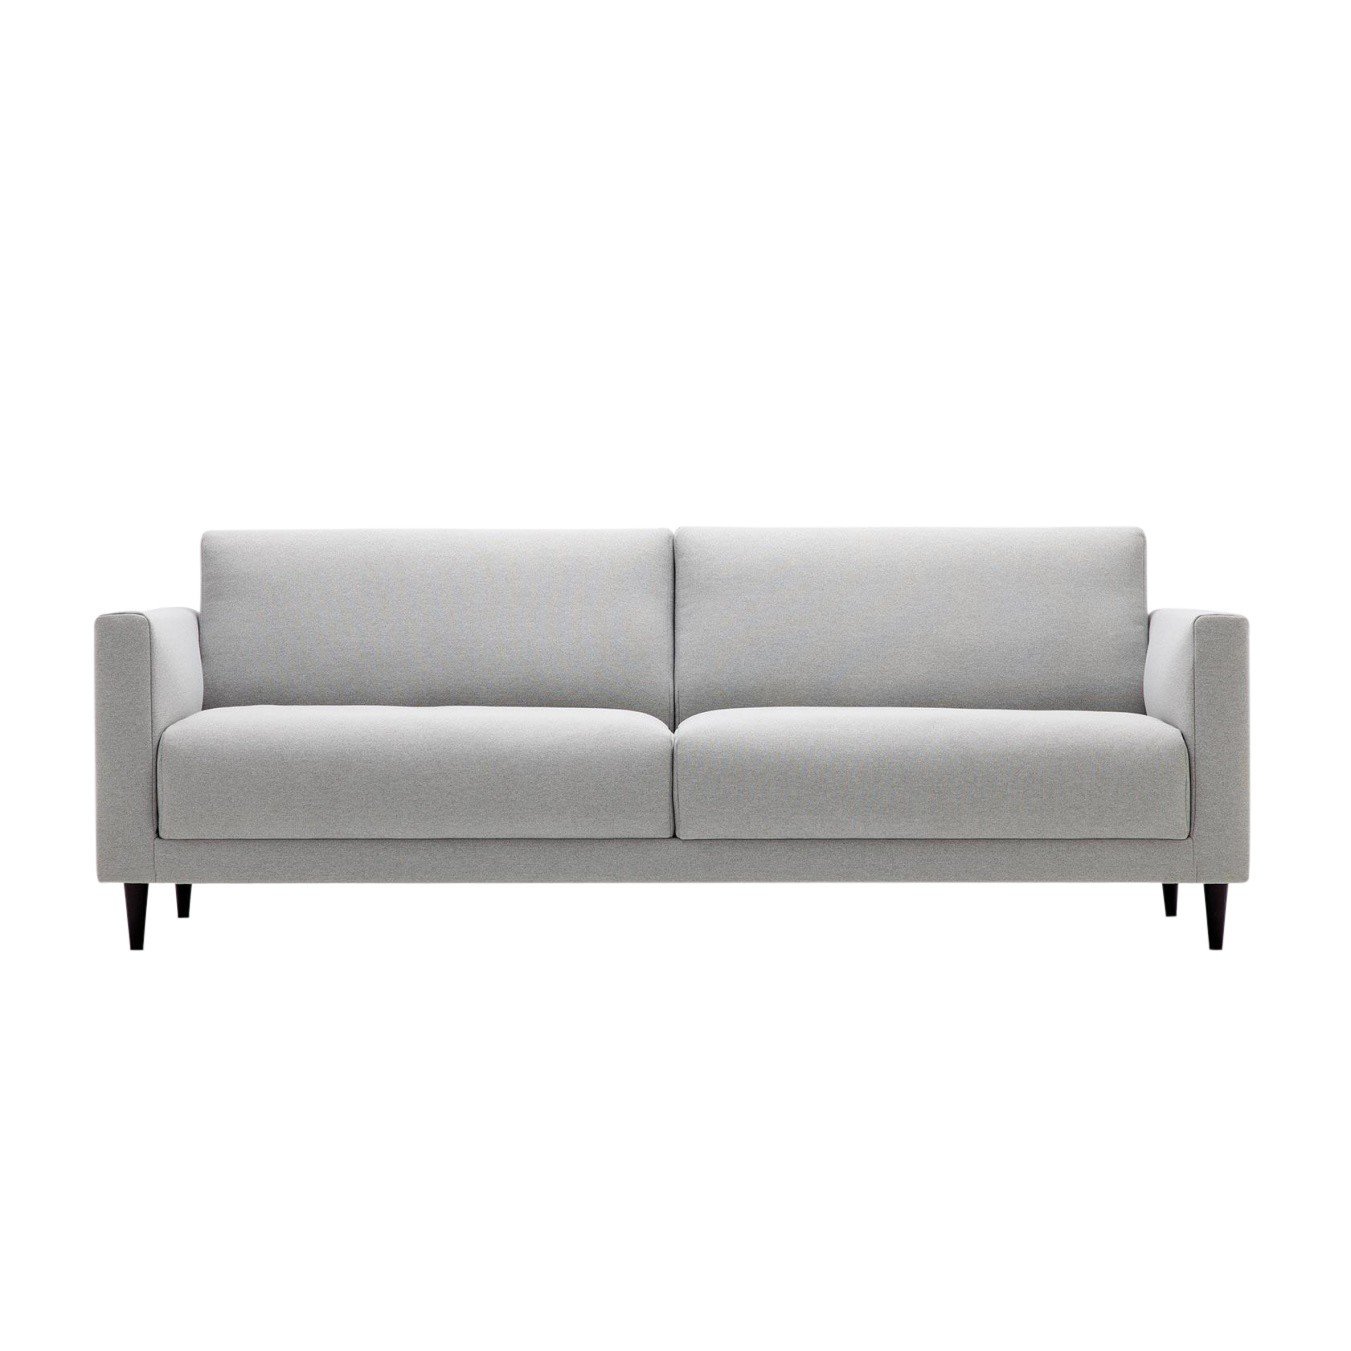 Rolf Benz Sofa Freistil Freistil 141 3 Seater Sofa Frame Wood